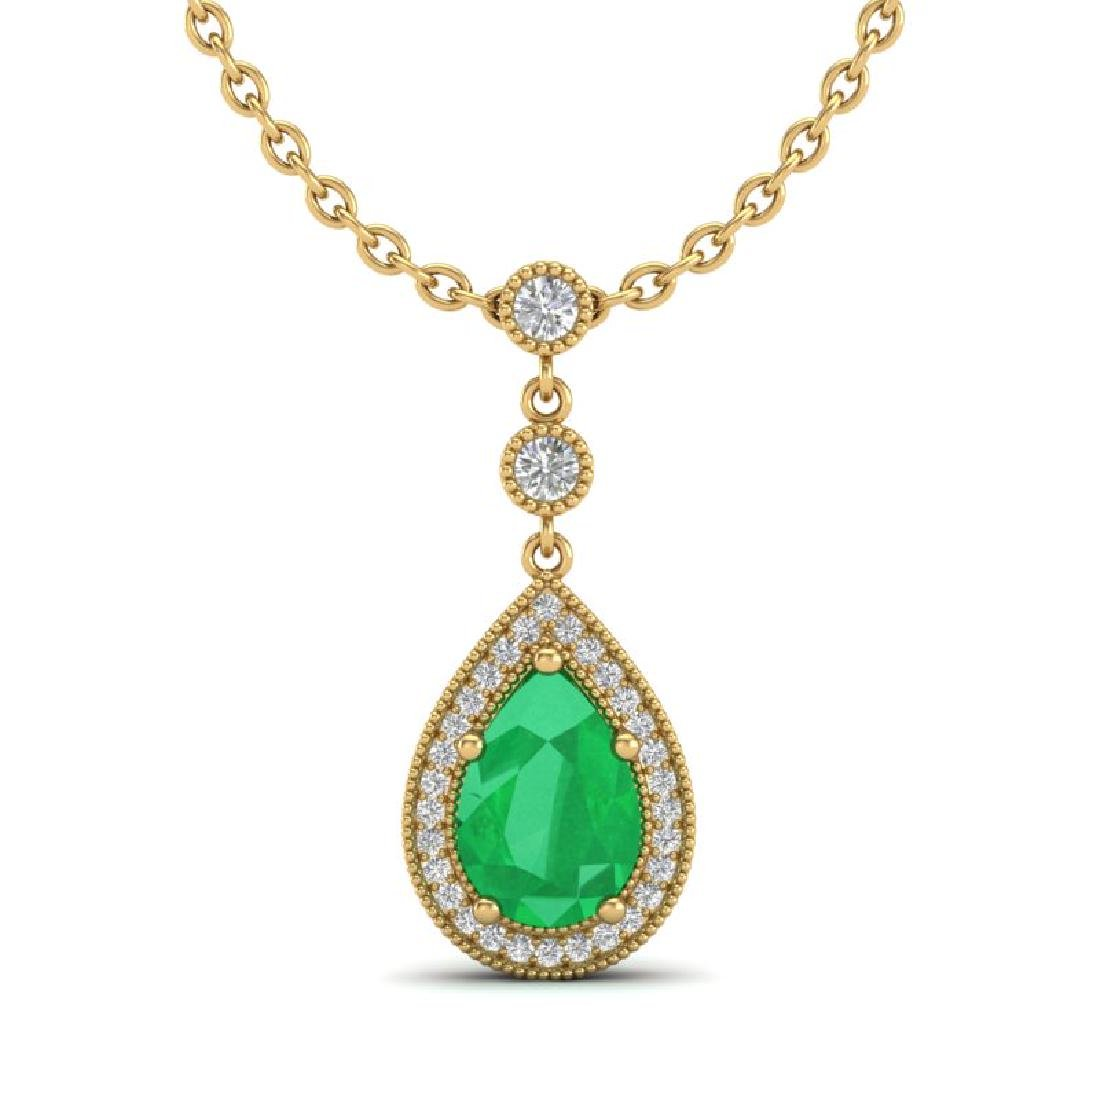 2.75 CTW Emerald & Micro Pave VS/SI Diamond Necklace - 2